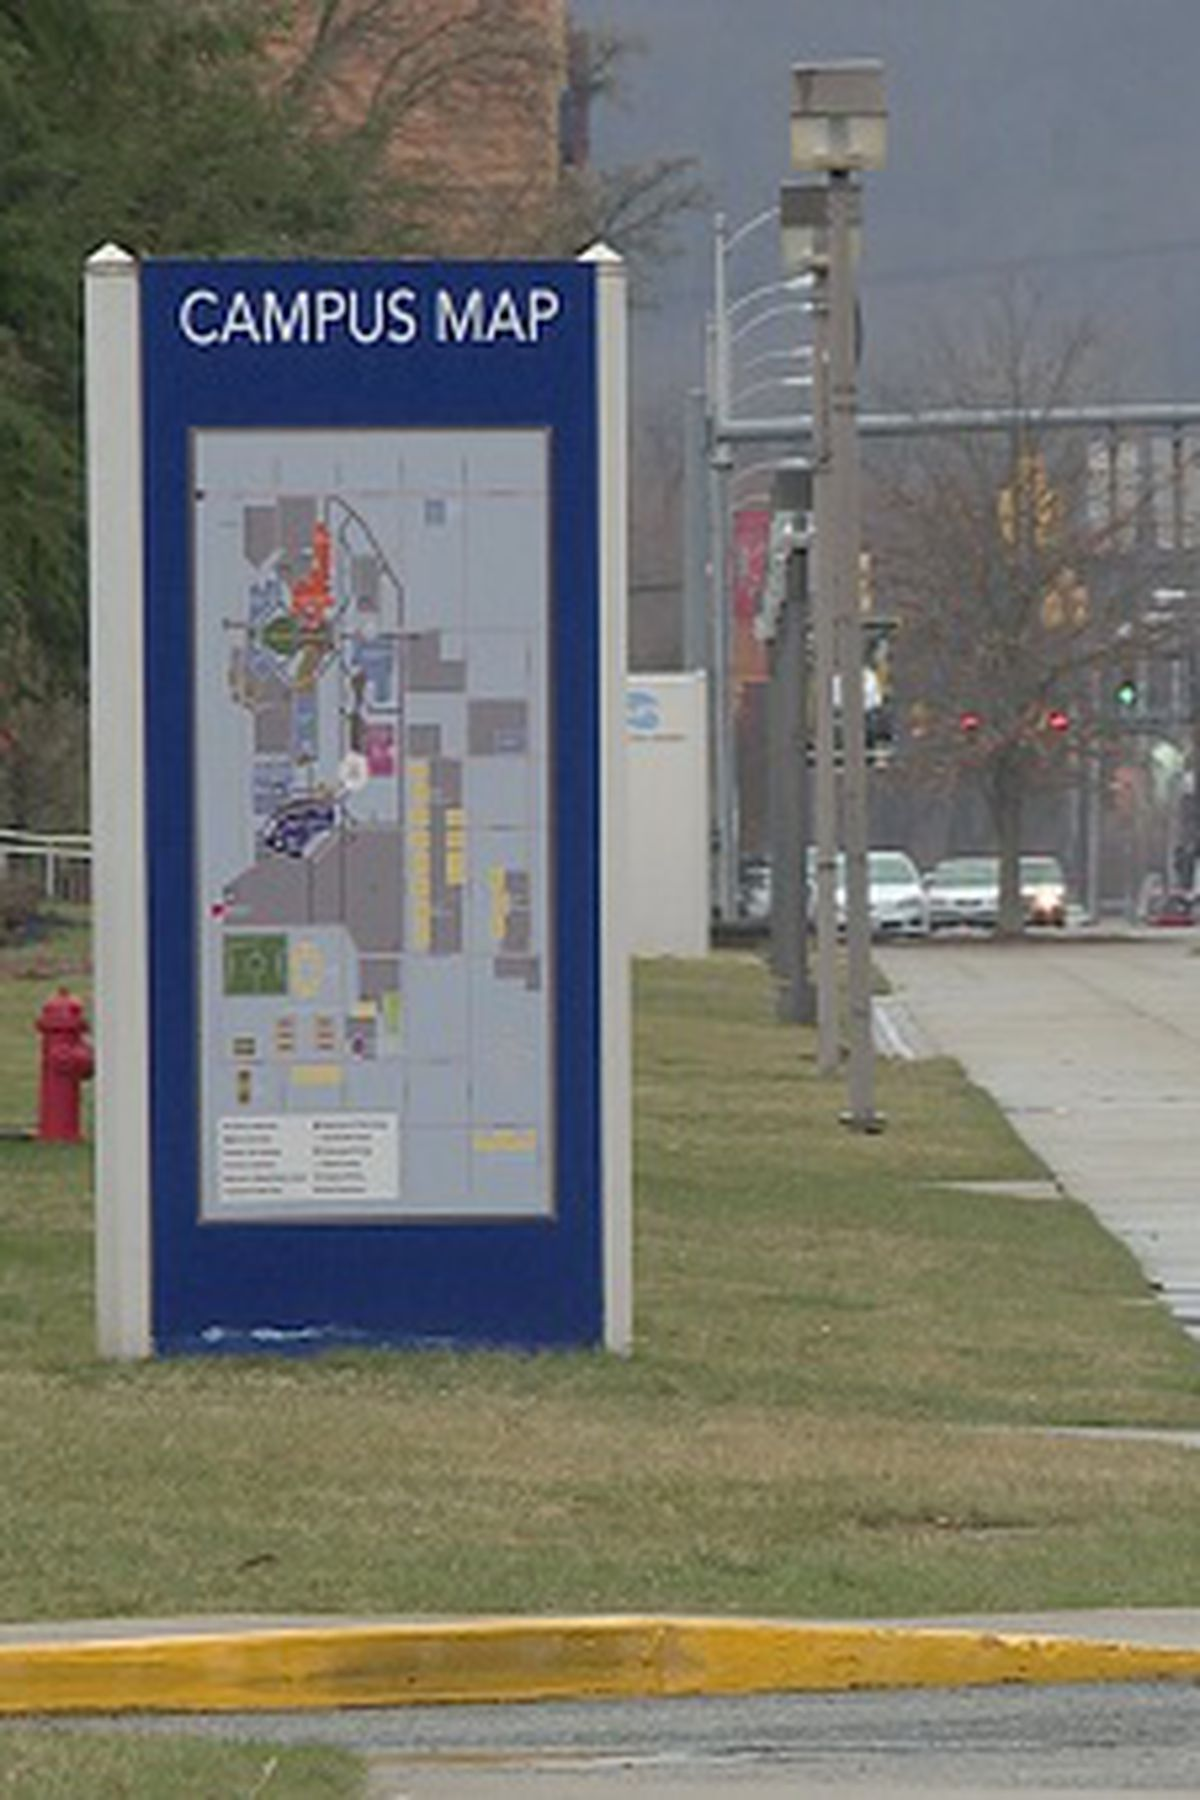 shawnee state university campus map One Suspected Case Of Covid 19 At Shawnee State Cleared shawnee state university campus map